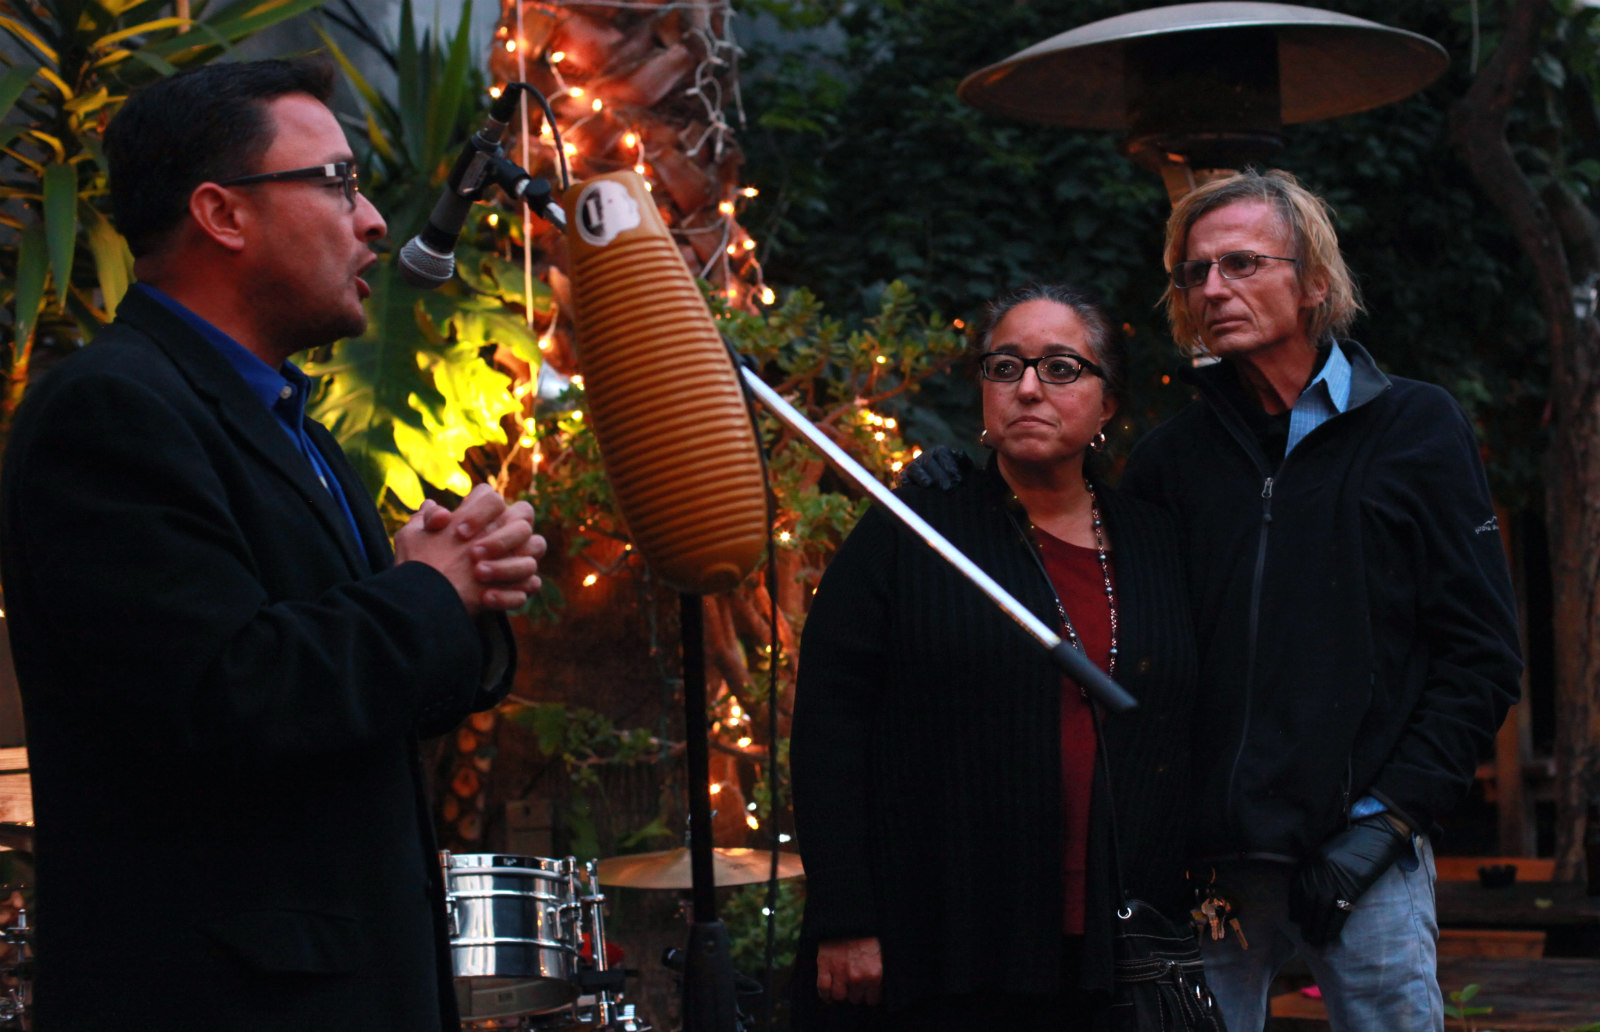 Supervisor David Campos (left) speaks at a benefit for Christina Olague (center) who stands with her housemate Patrick Ferry.